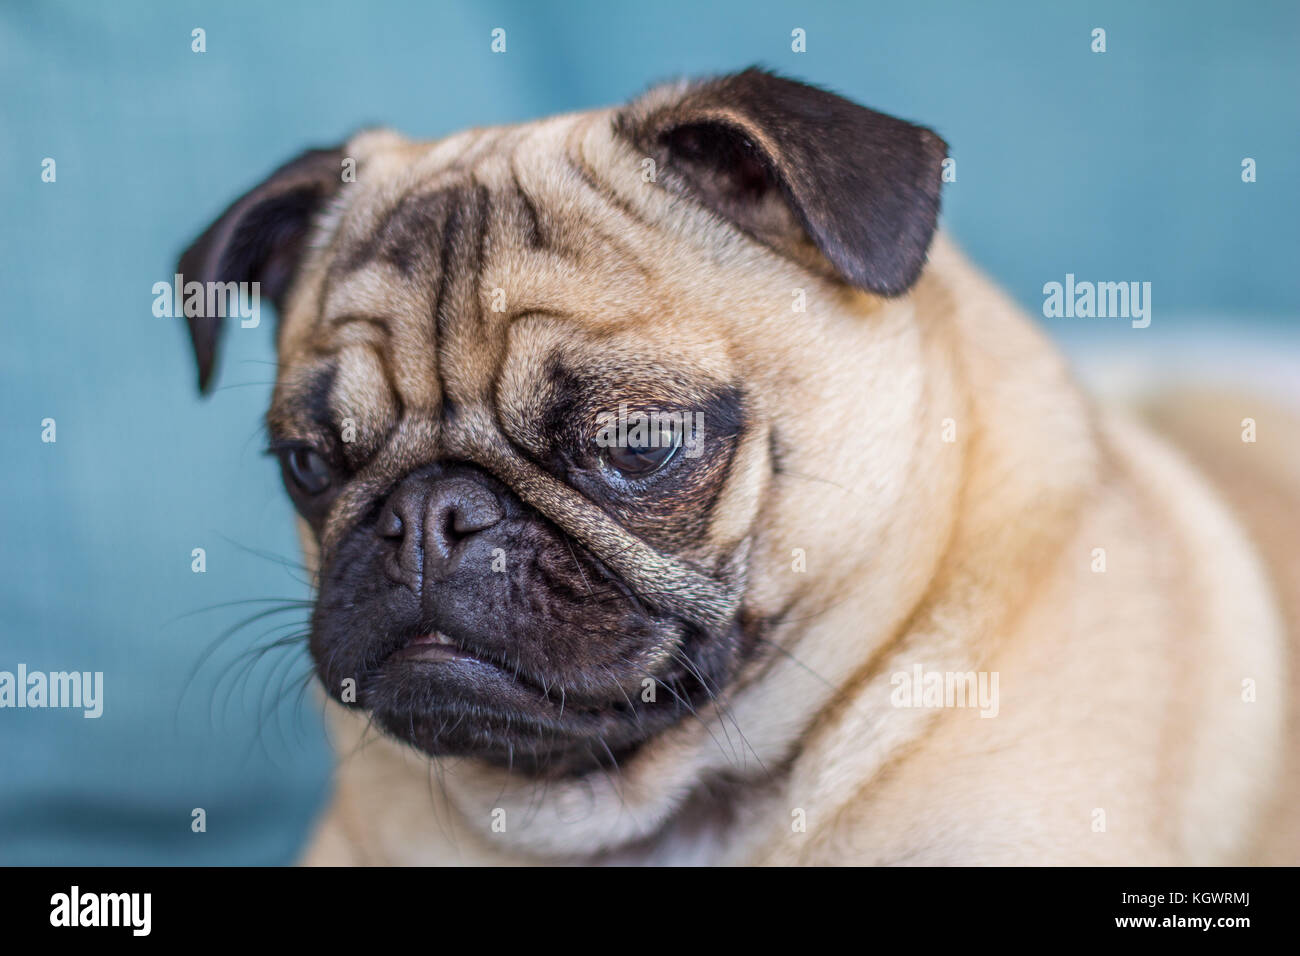 Hank the Pug - Stock Image